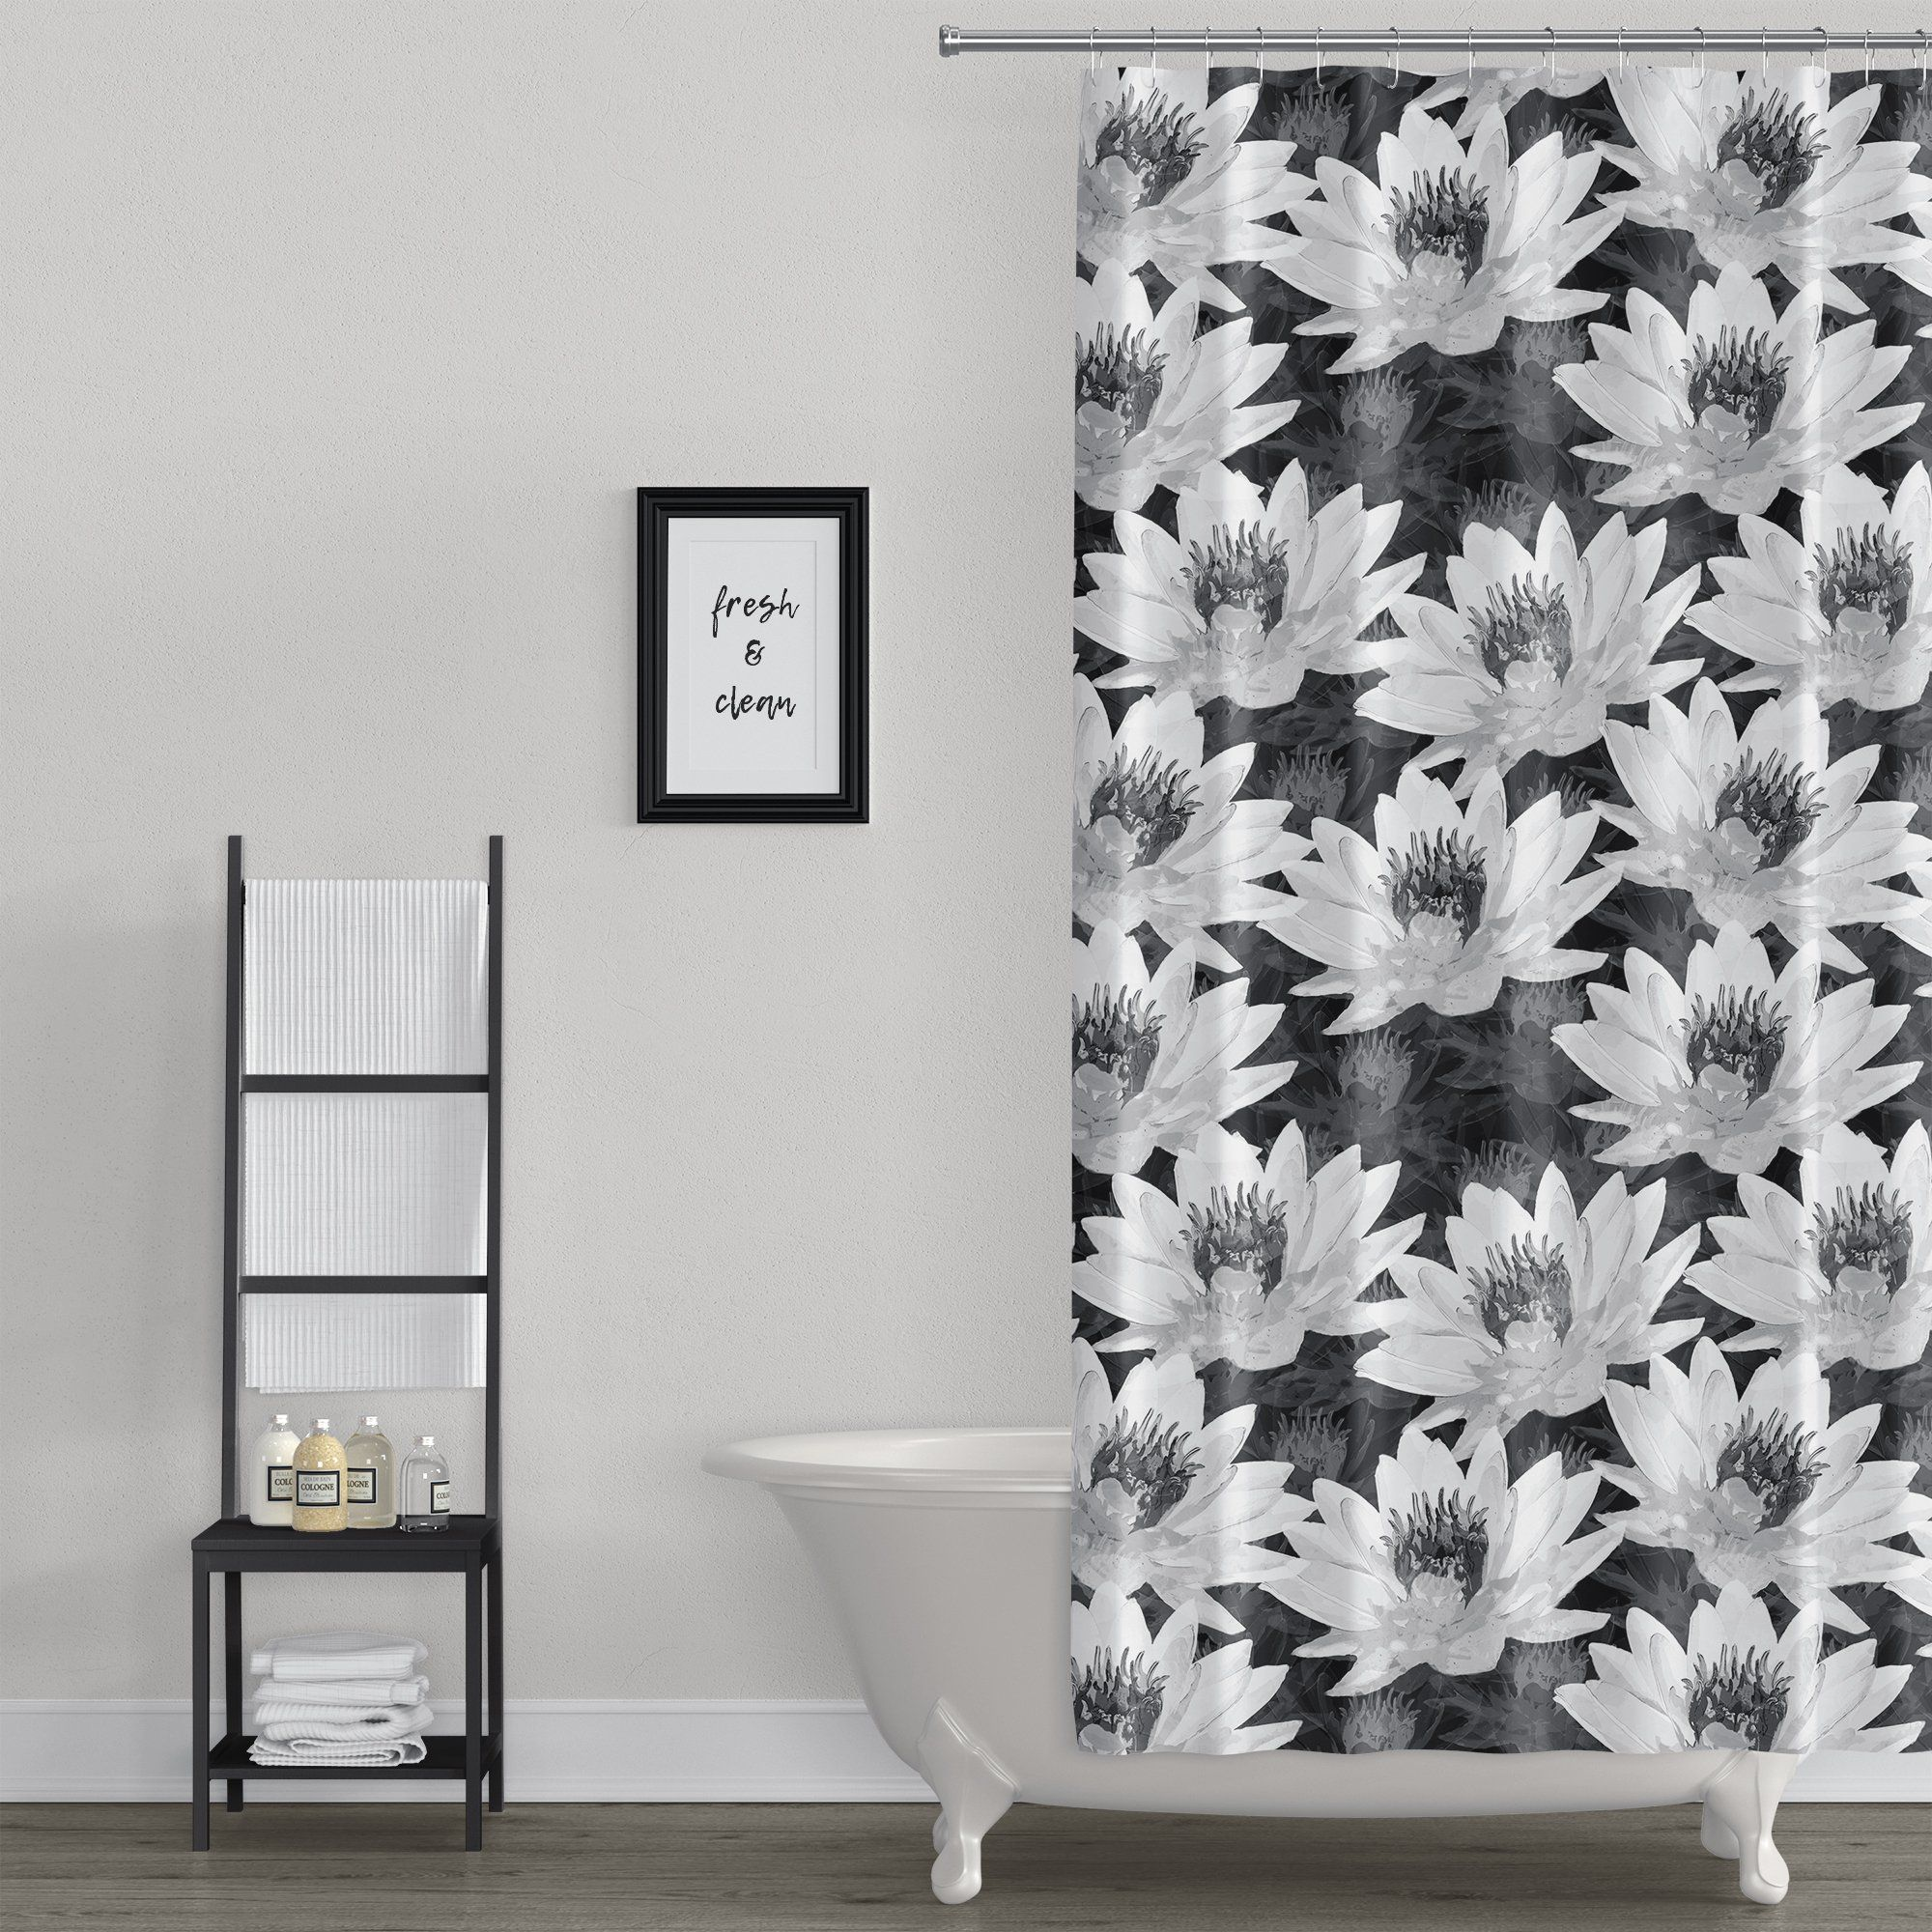 Lotus Flower Black And White Spa Design Shower Curtain In 2020